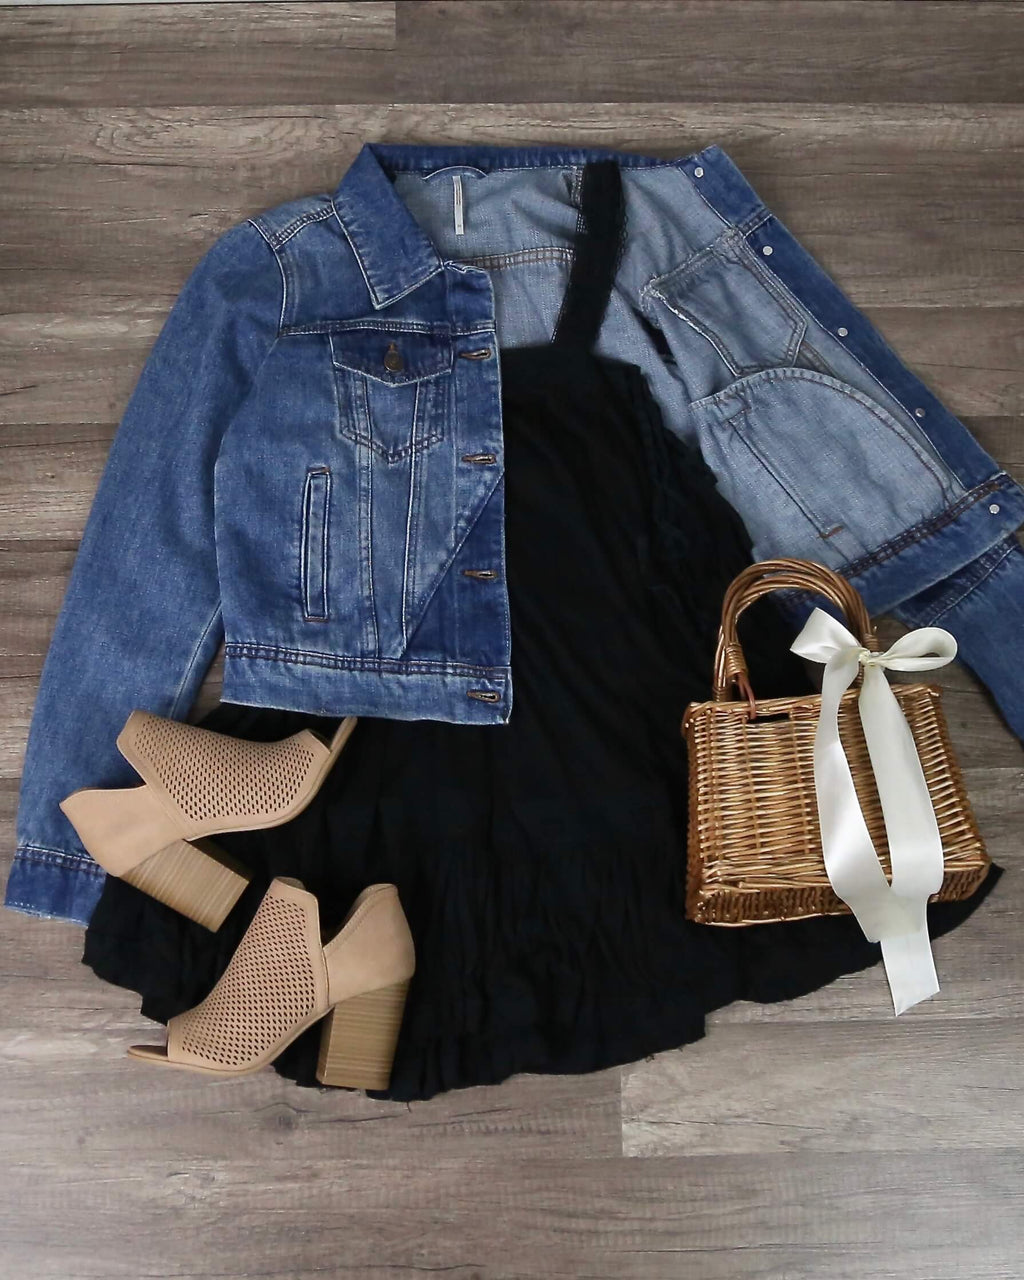 Free People - Rumors Denim Jacket - Indigo Combo